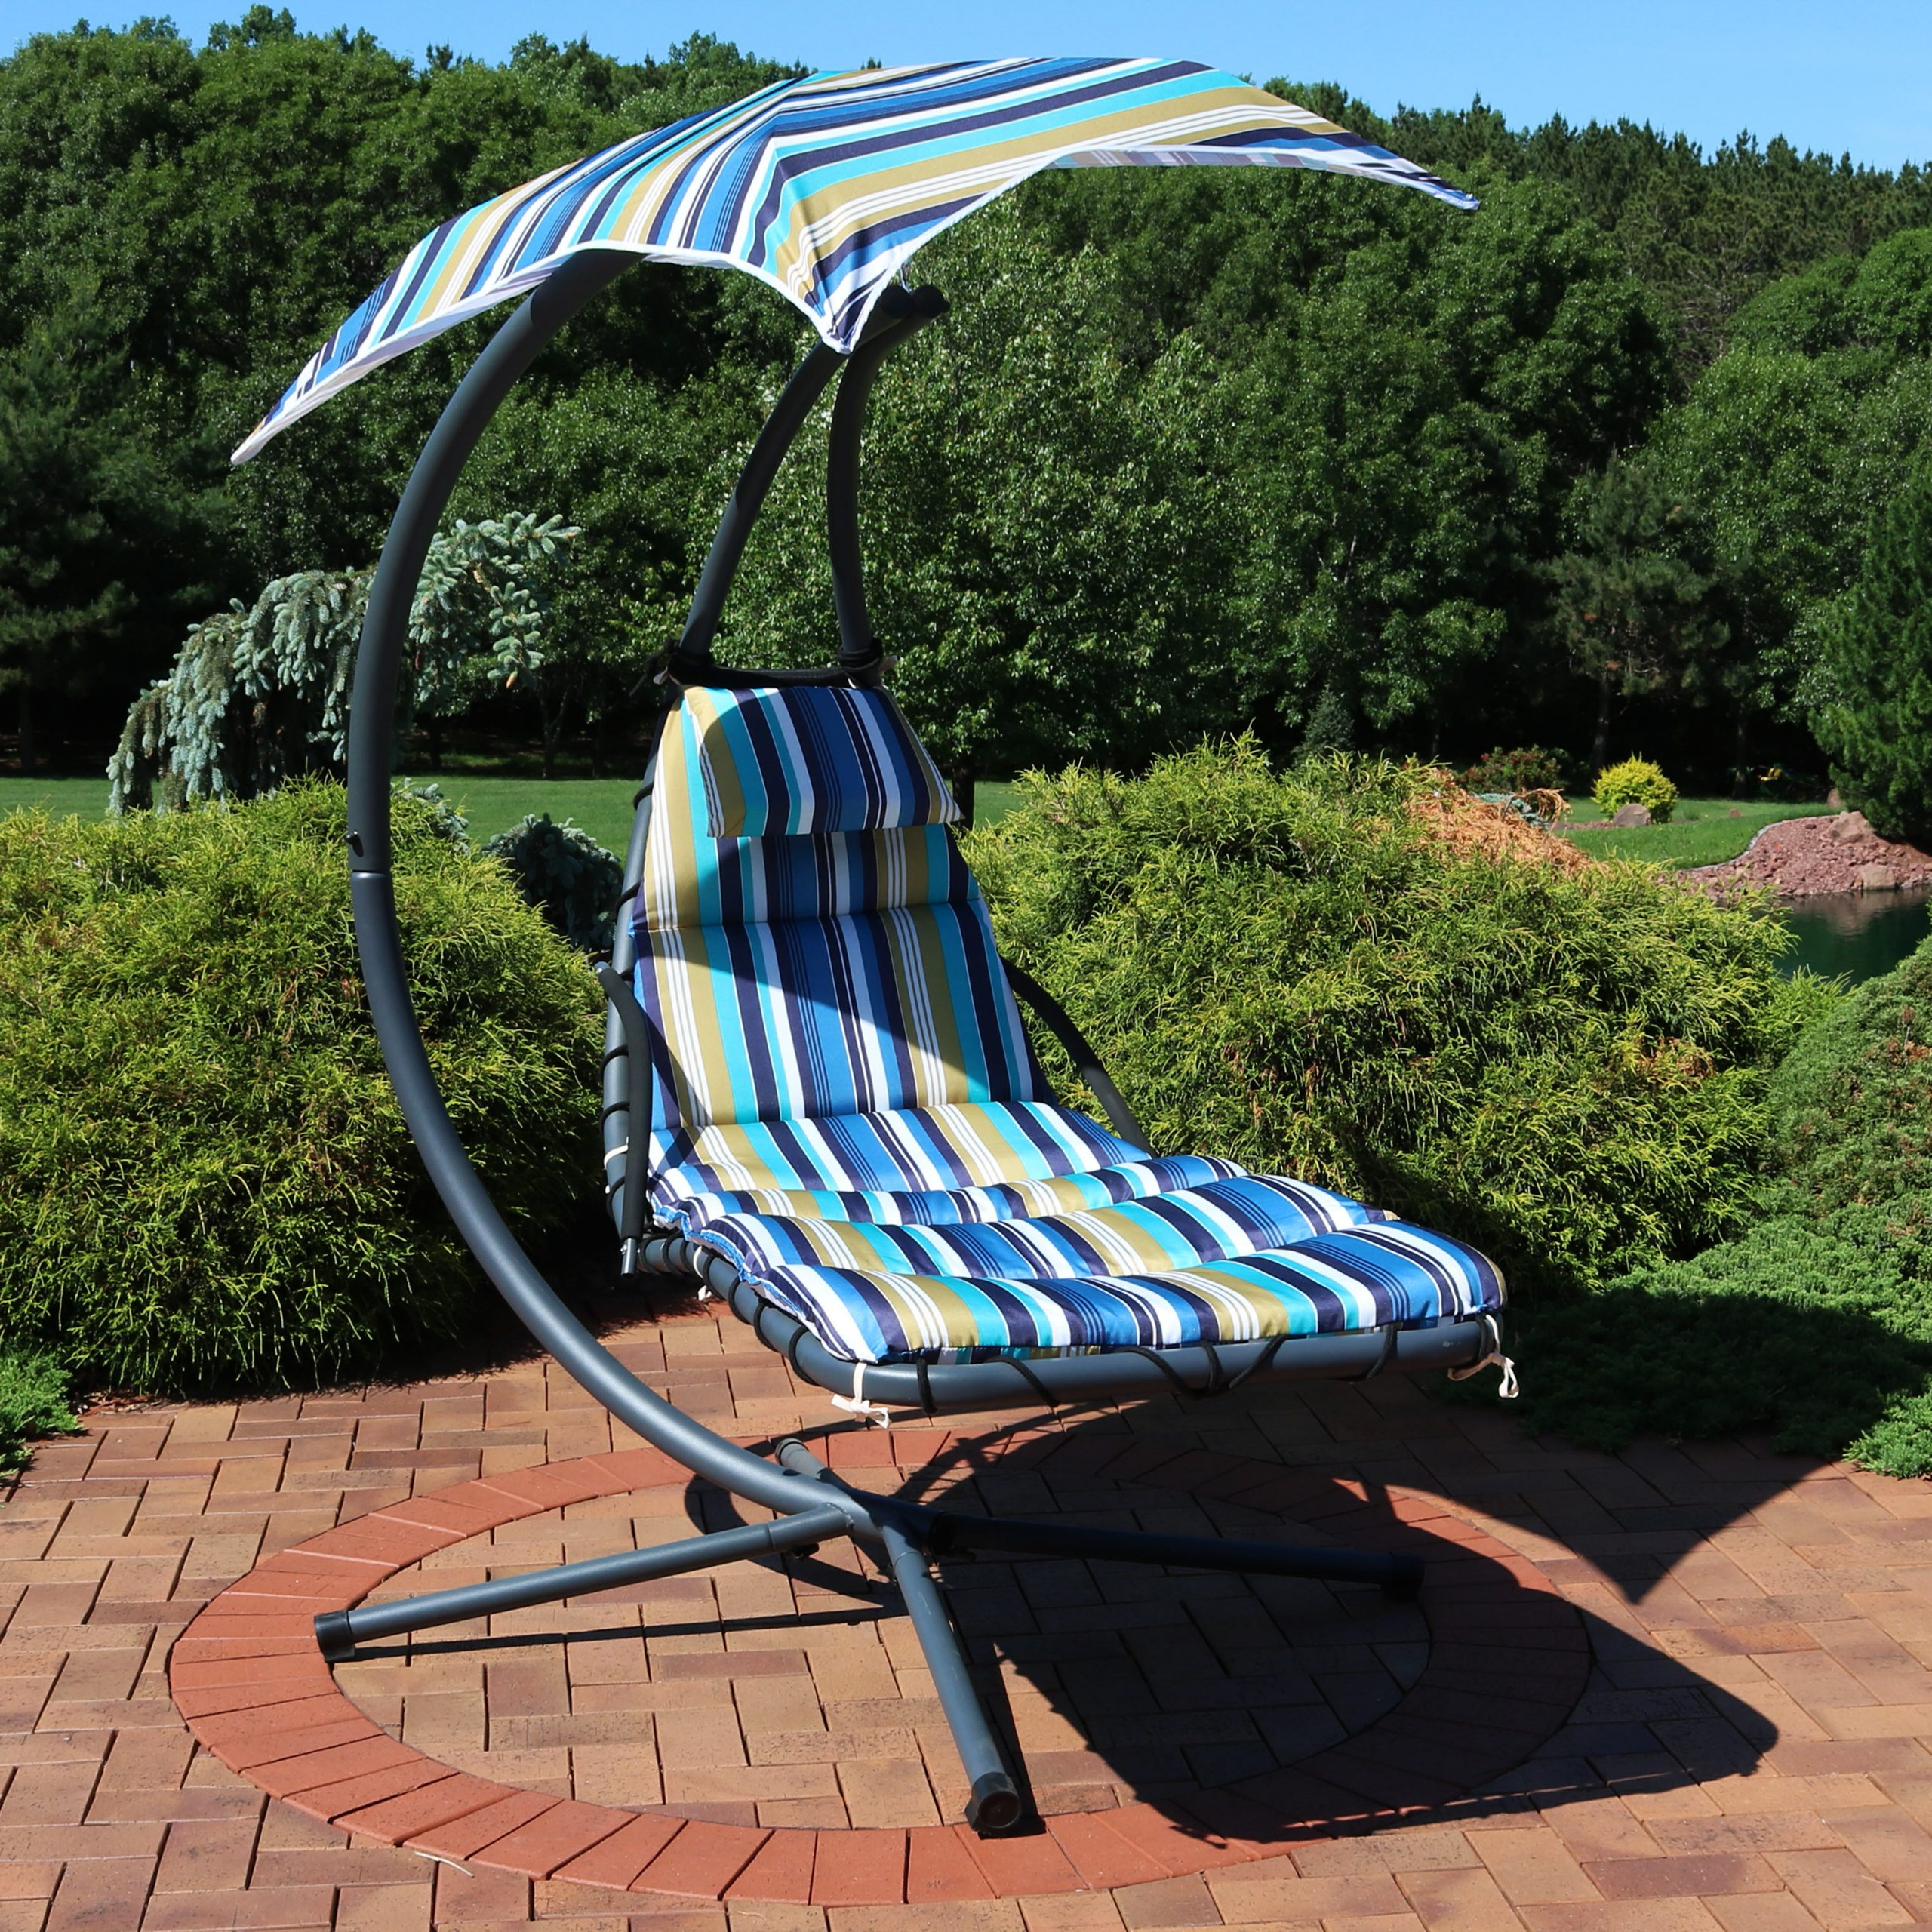 Garden Leisure Outdoor Hammock Patio Canopy Rocking Chairs With Most Current Sunnydaze Floating Chaise Lounger, Outdoor Hanging Hammock (View 24 of 25)